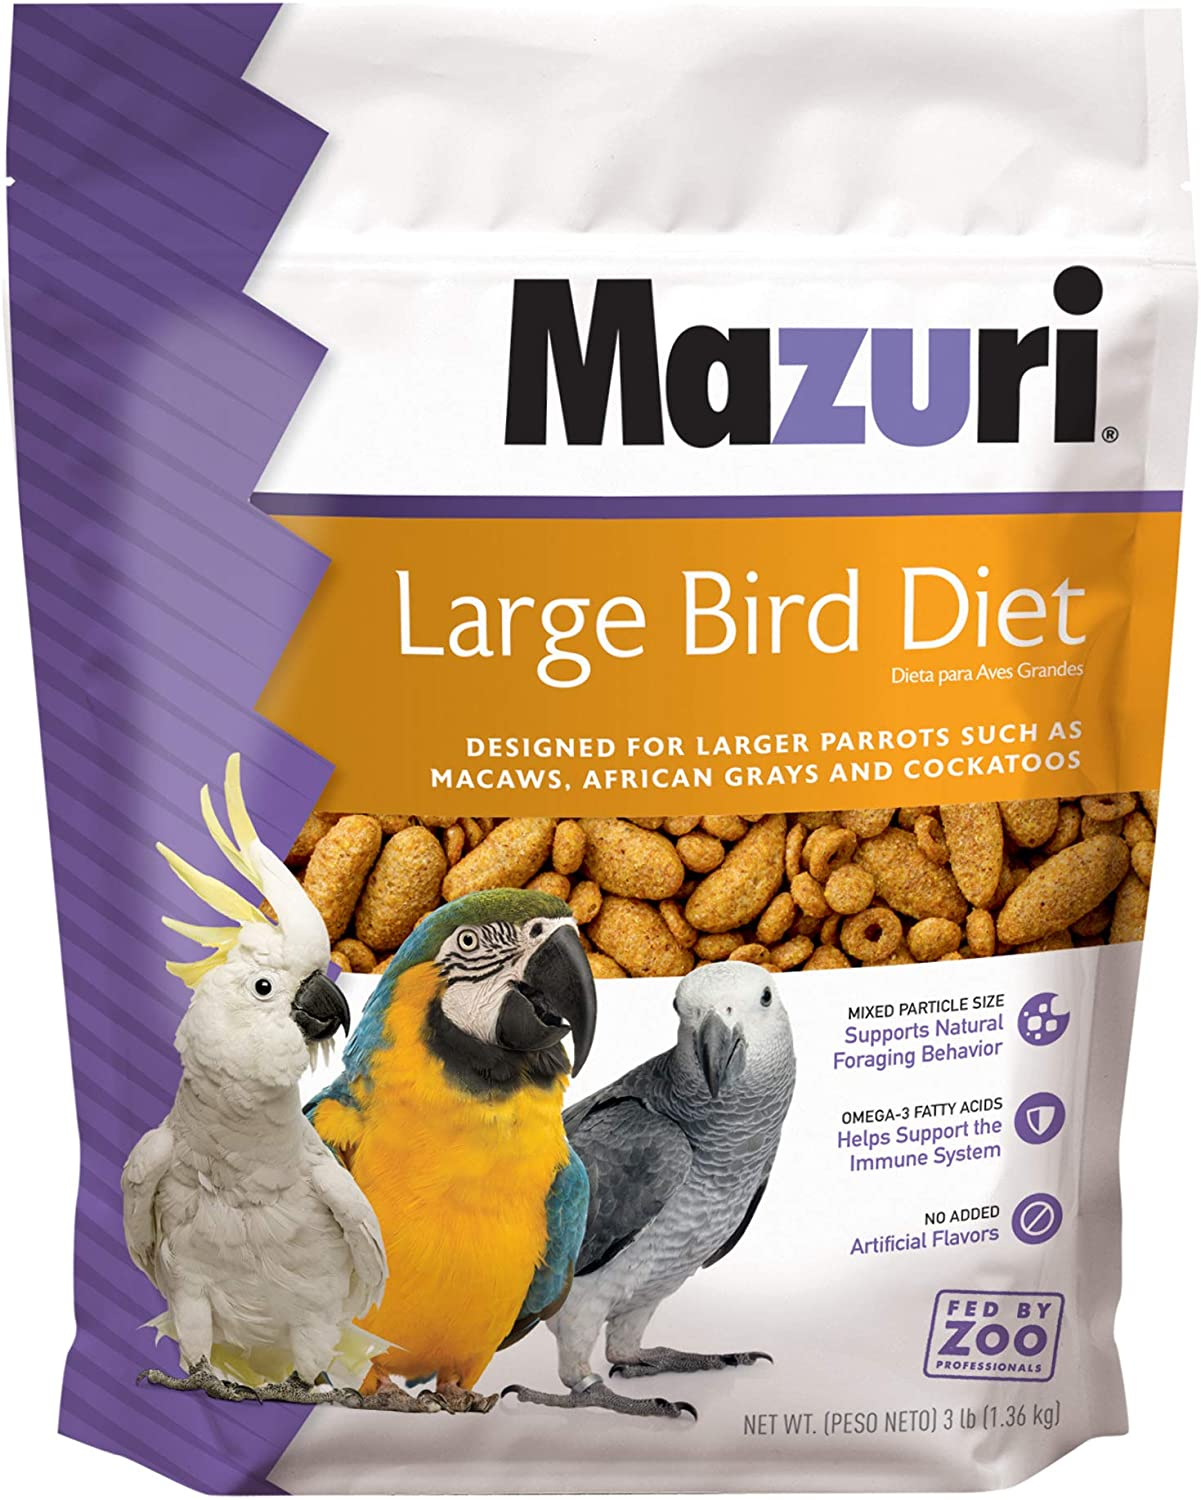 Mazuri | Nutritionally Complete Food for Large Birds | 3 Pound (3 lb.) Bag